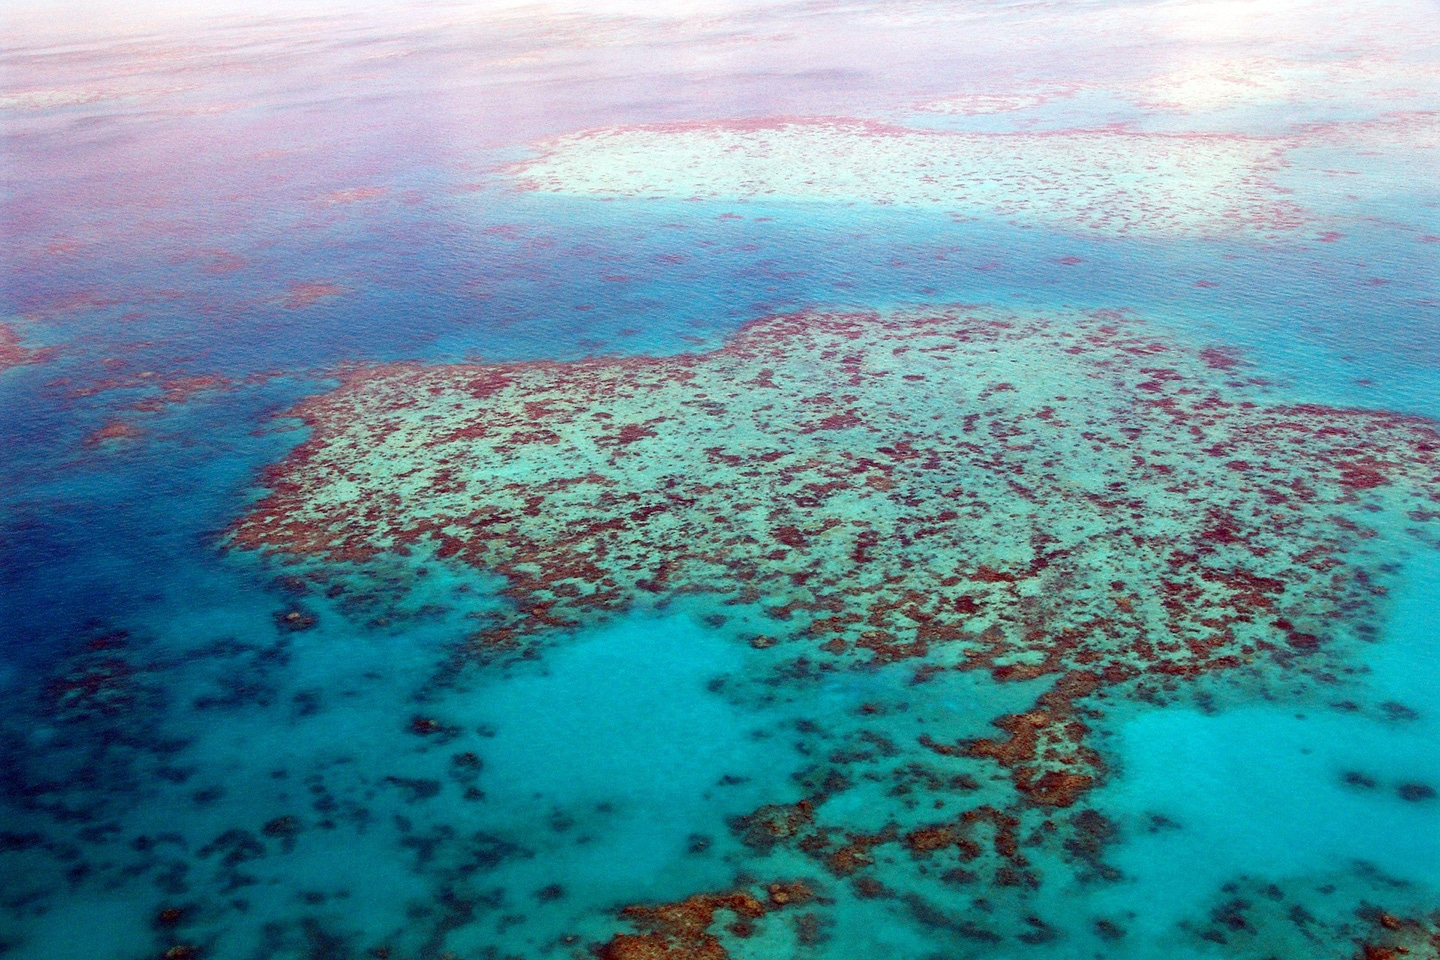 The Great Barrier Reef from the air